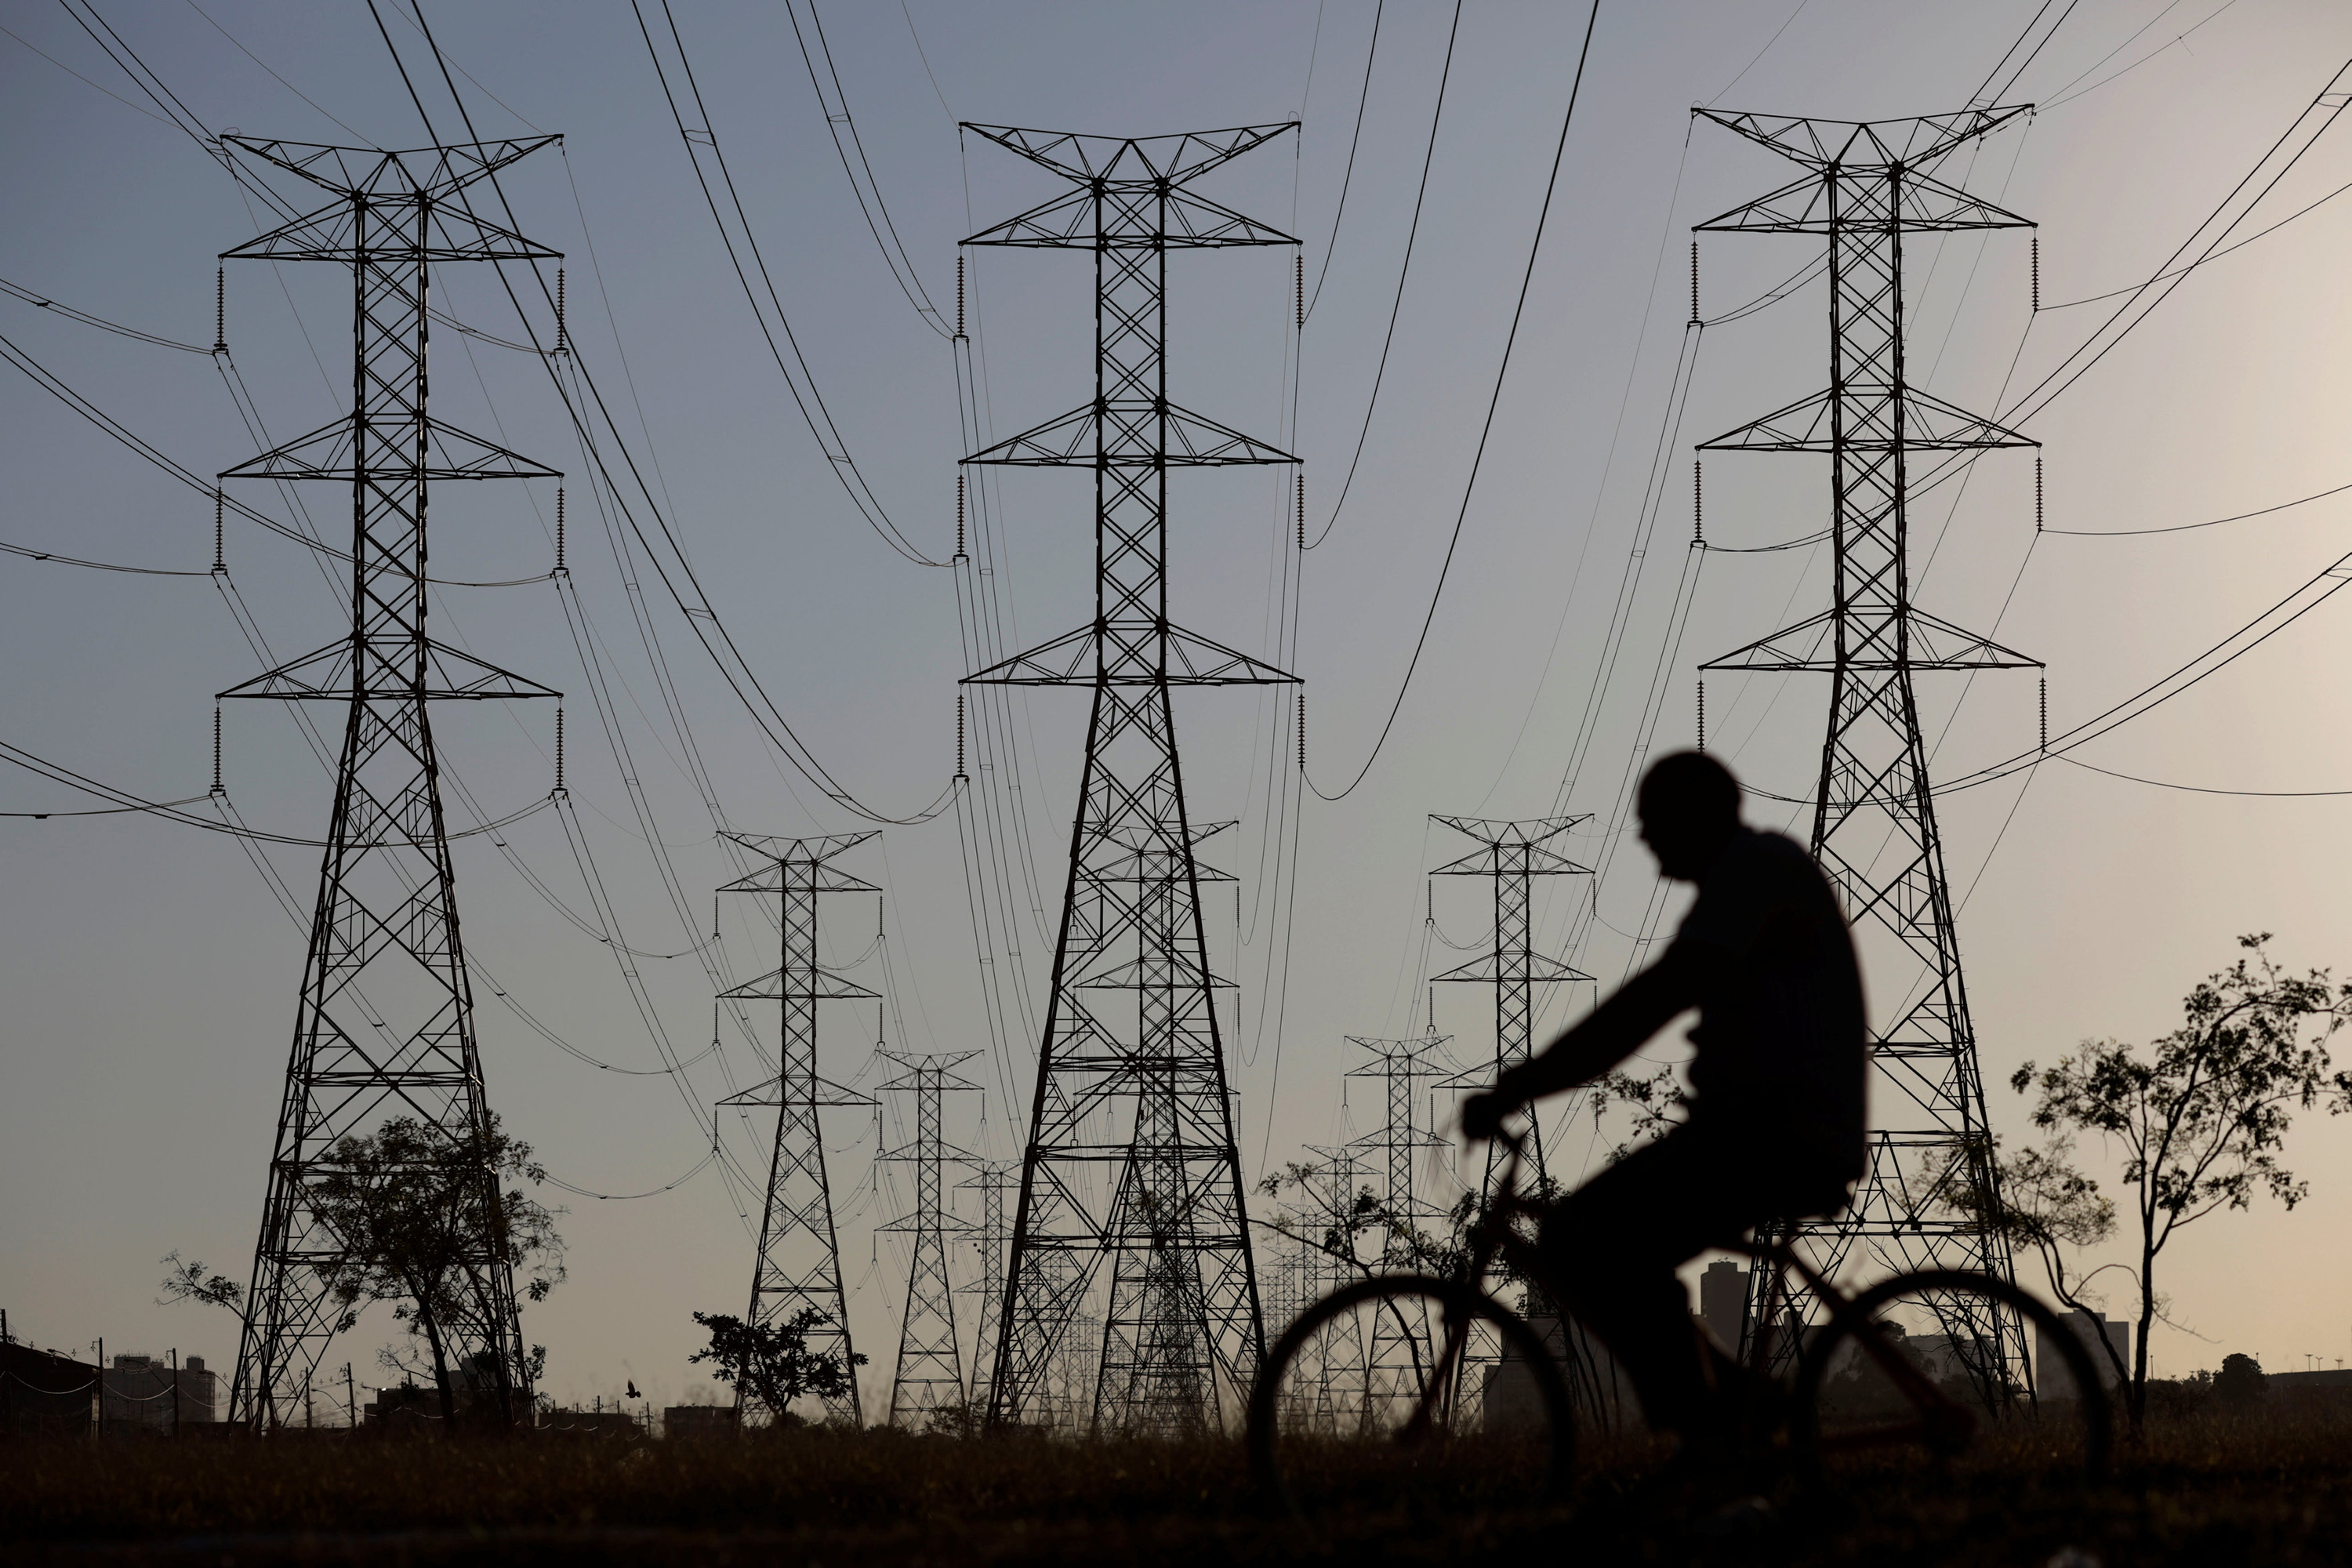 A man rides a bicycle near power lines connecting pylons of high-tension electricity, in Brasilia, Brazil  August 31, 2017. REUTERS/Ueslei Marcelino